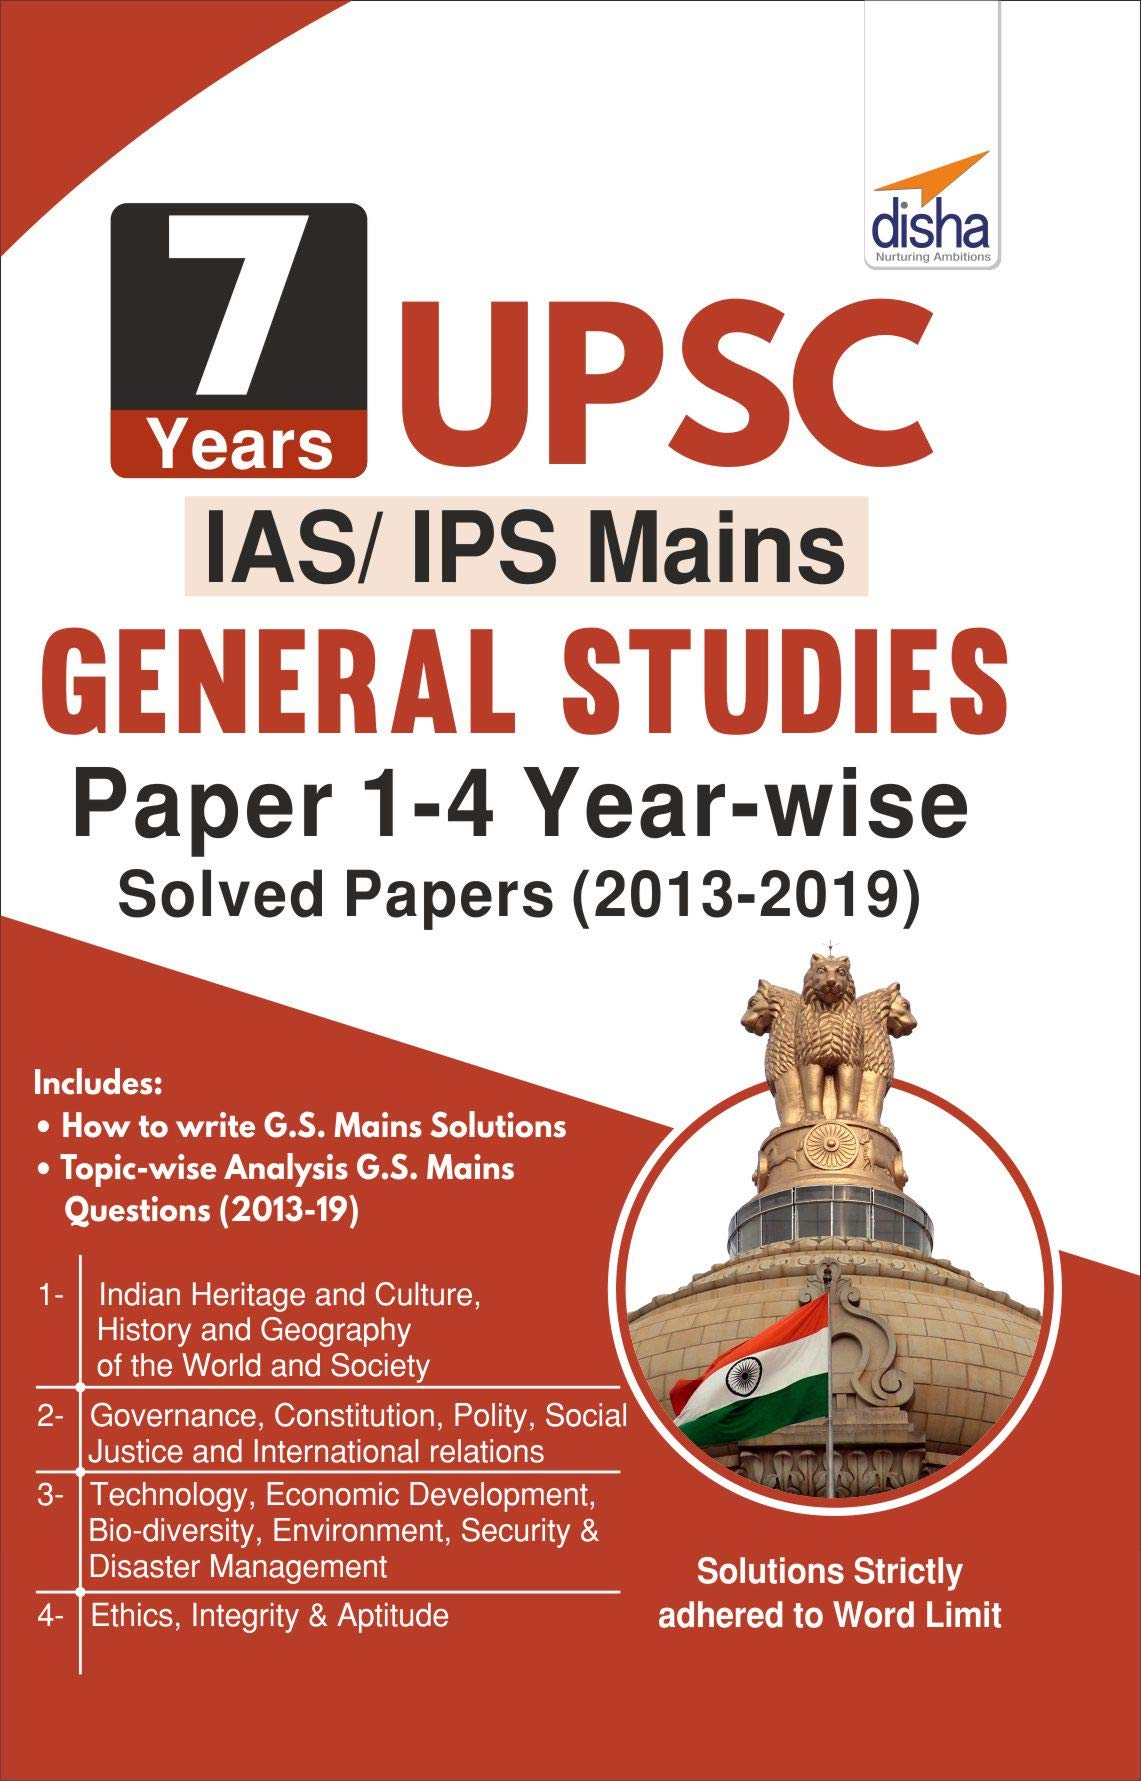 7 Years UPSC IAS/ IPS Mains General Studies Papers 1 – 4 Year-wise Solved (2013 – 2019)